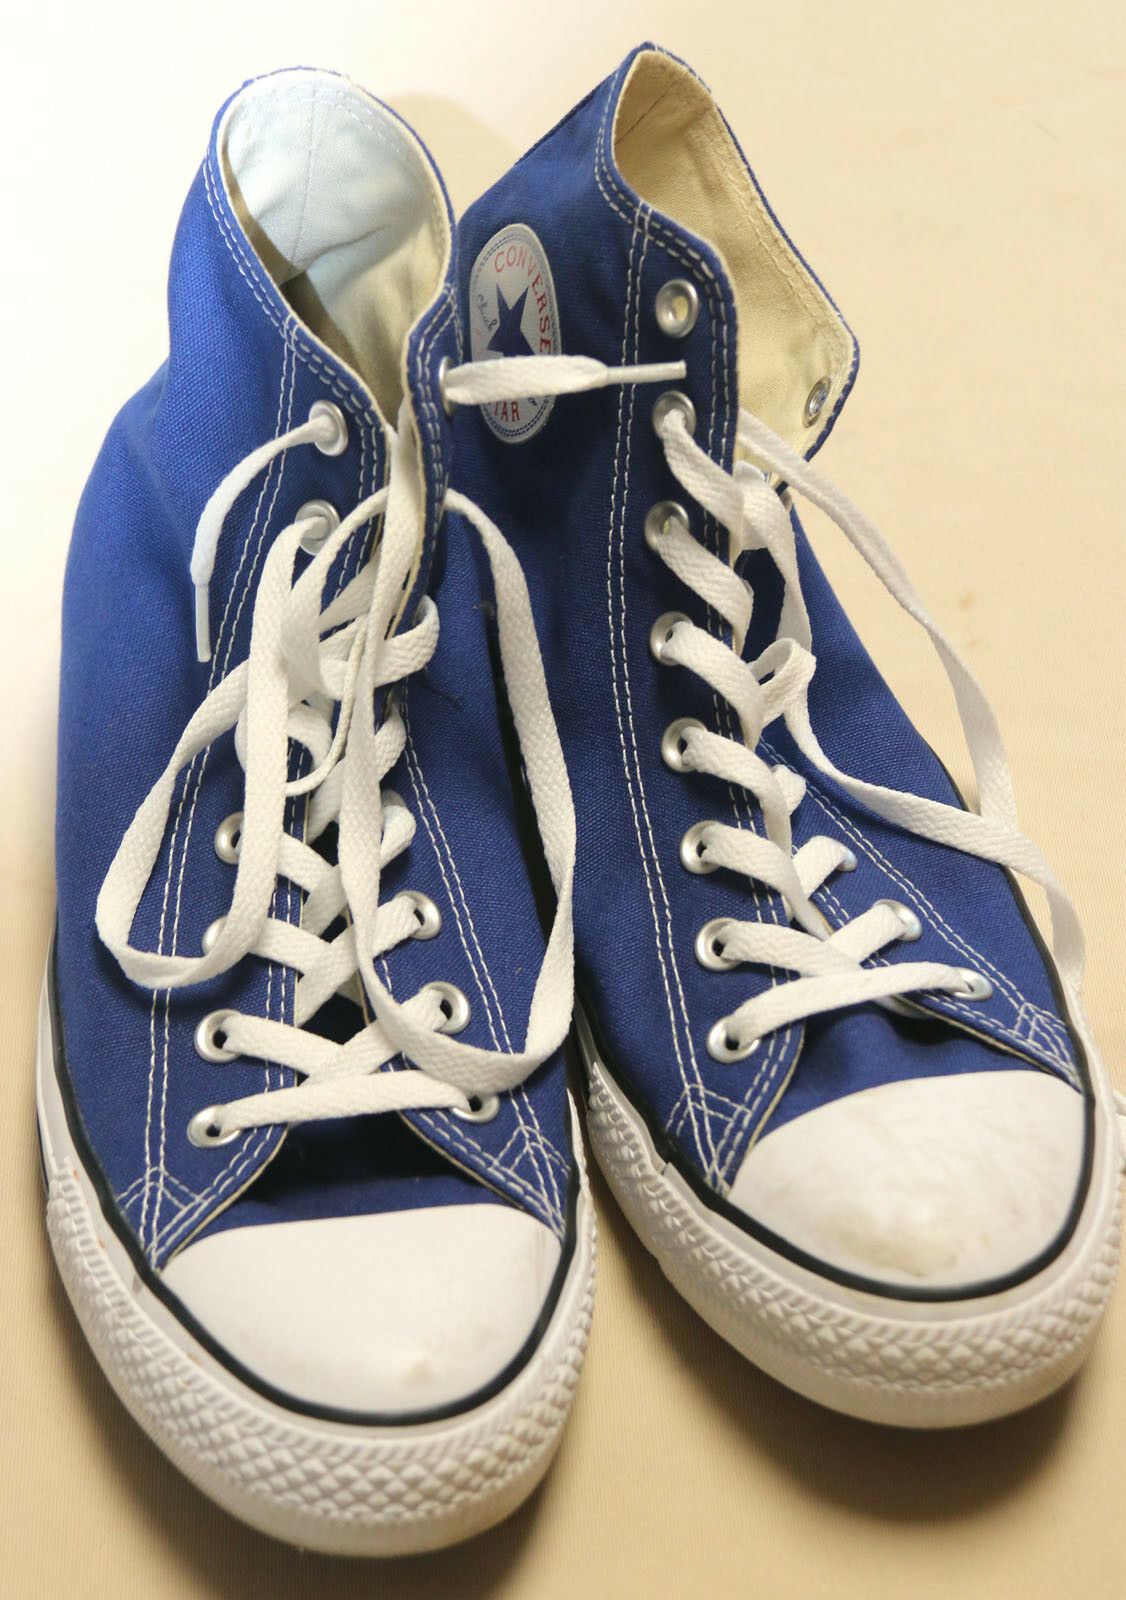 Converse Chuck Taylor Blue & White Shoes Sneakers Unisex Men's Sz. 10 Womens12